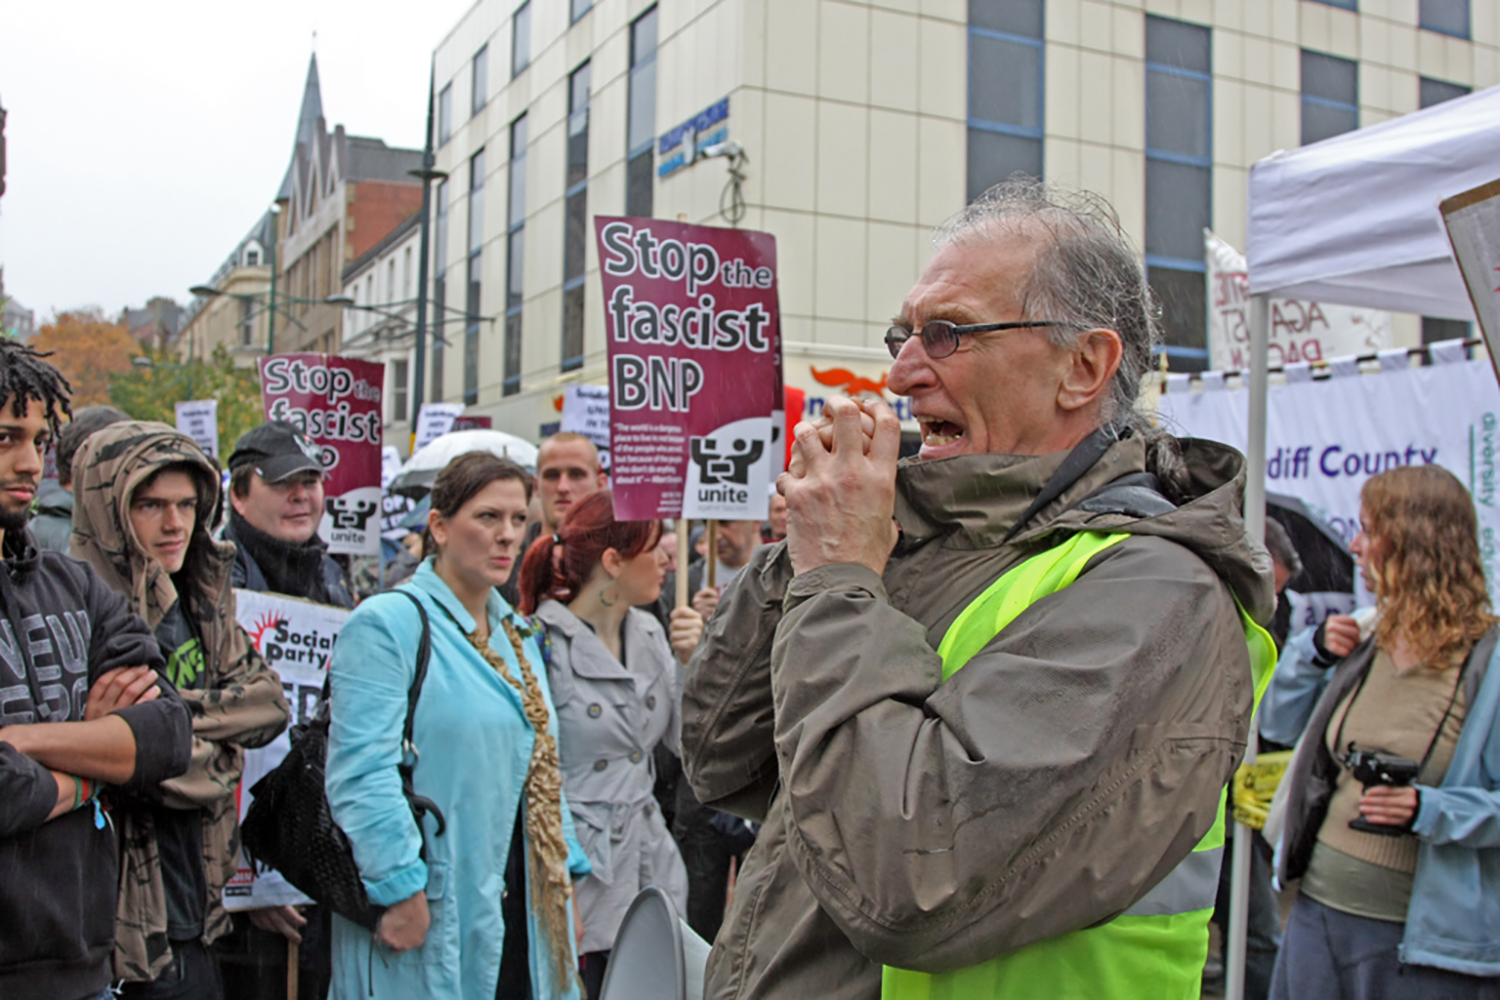 Anti, EDF, Demo, Demonstration, Newport, BNP, Fascist, John Frost, Square, Unite.